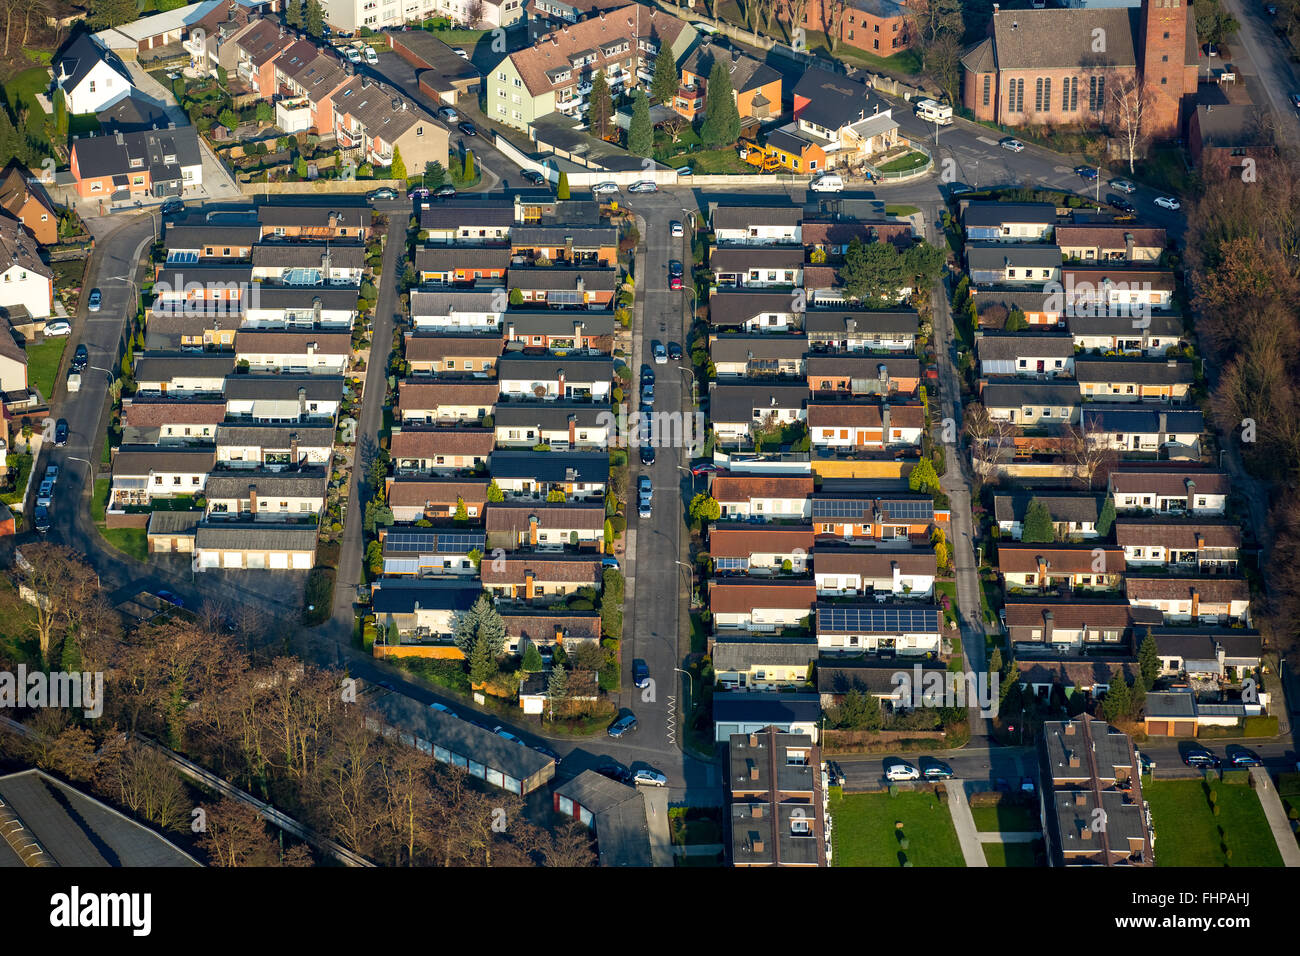 Aerial view,bungalows with tiled roofs on Detmold ring, cottage settlement, Wanne-Eickel, Herne,Ruhr area,North - Stock Image